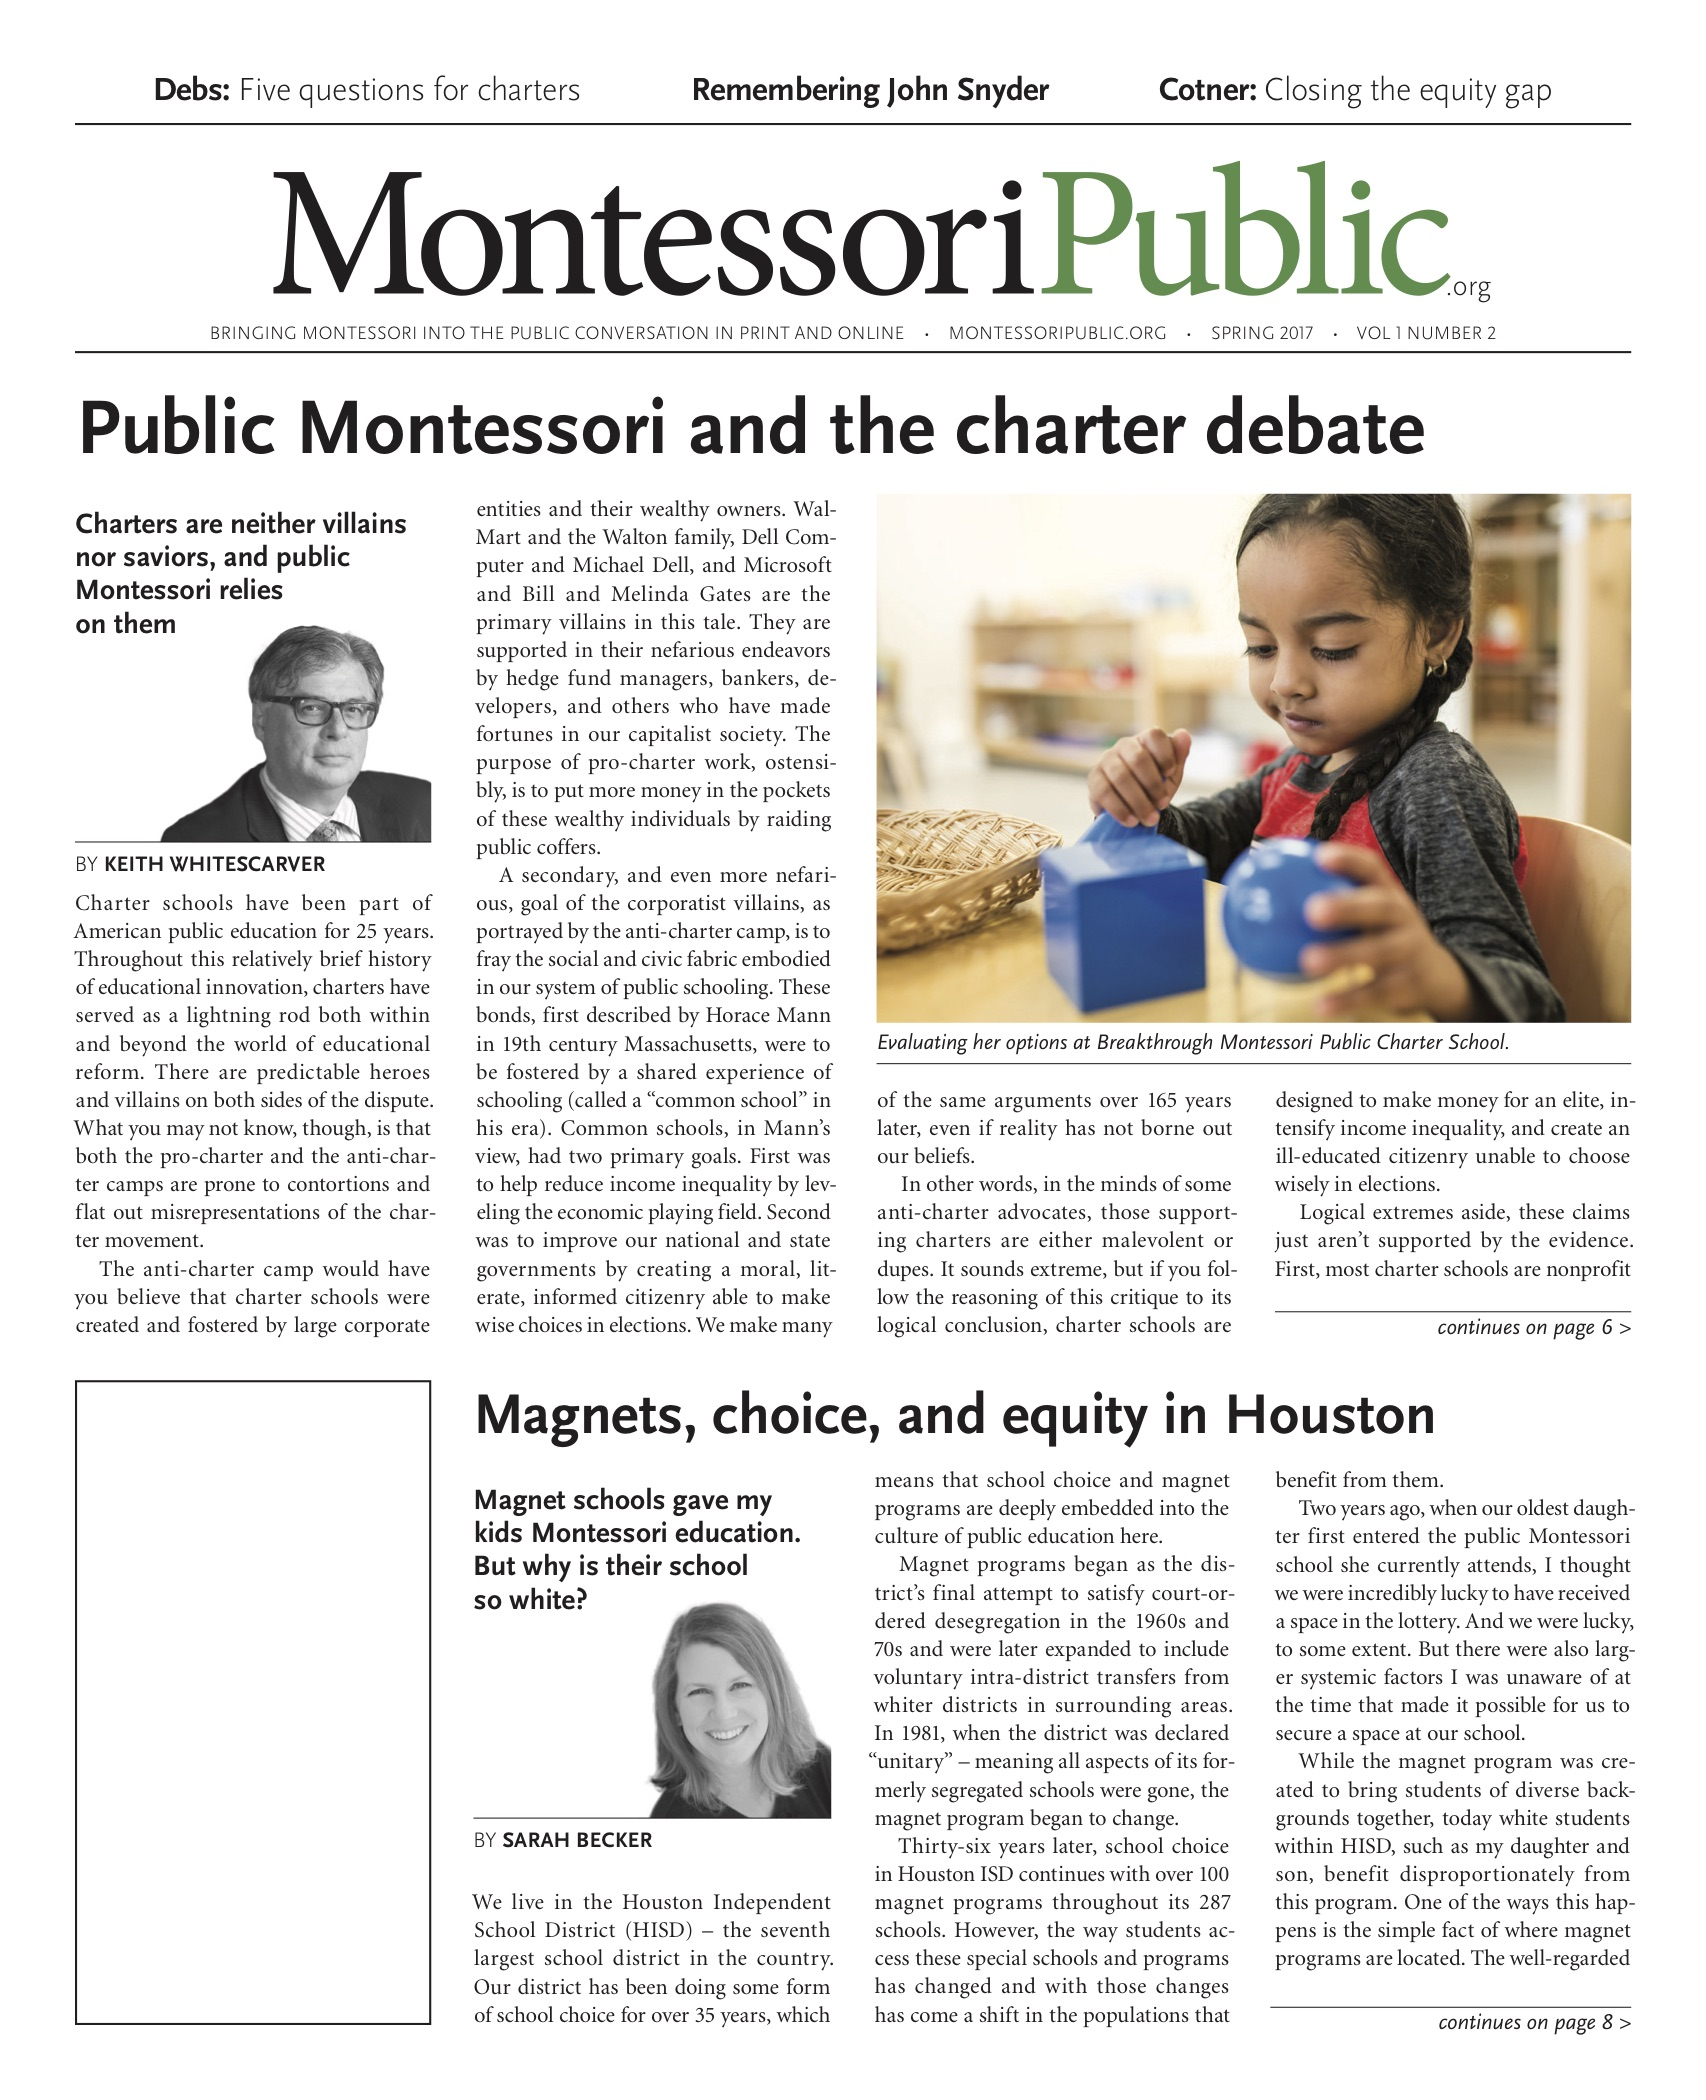 MontessoriPublic — Print Edition Vol.1 #2